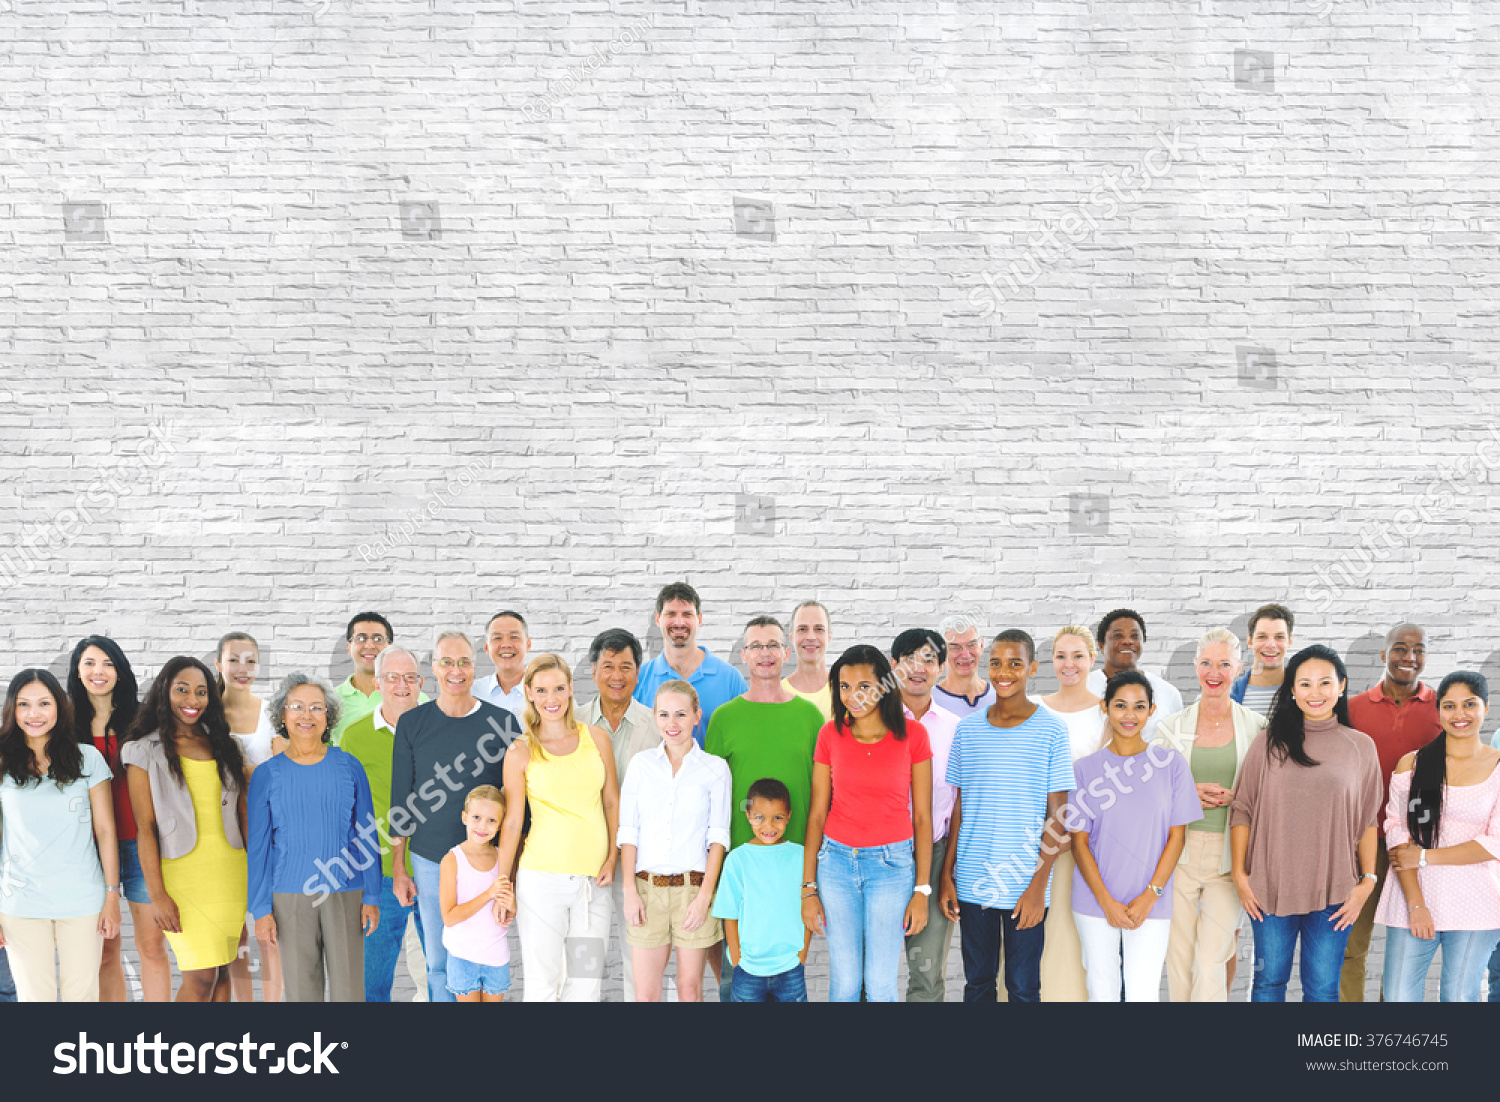 Multiethnic Group Mixed Age People Together Stock Photo ...